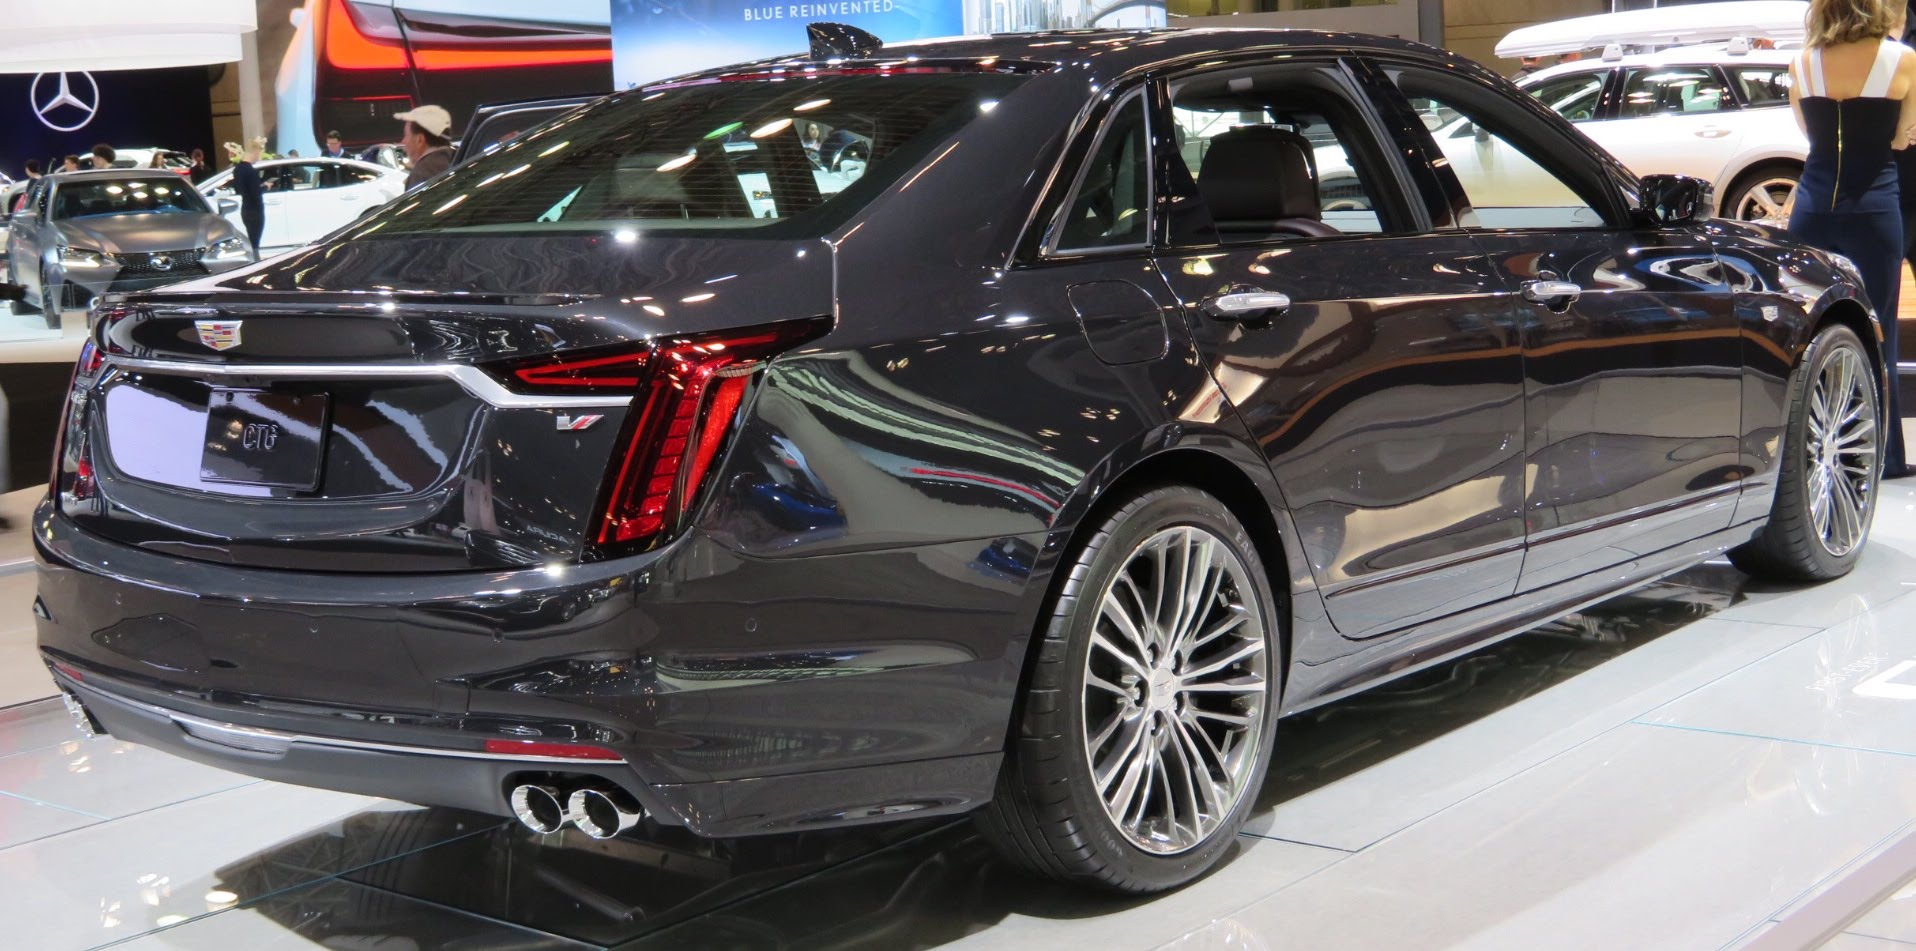 Datei 2019 Cadillac Ct6 V Sport Rear 4 2 18 Jpg Wikipedia